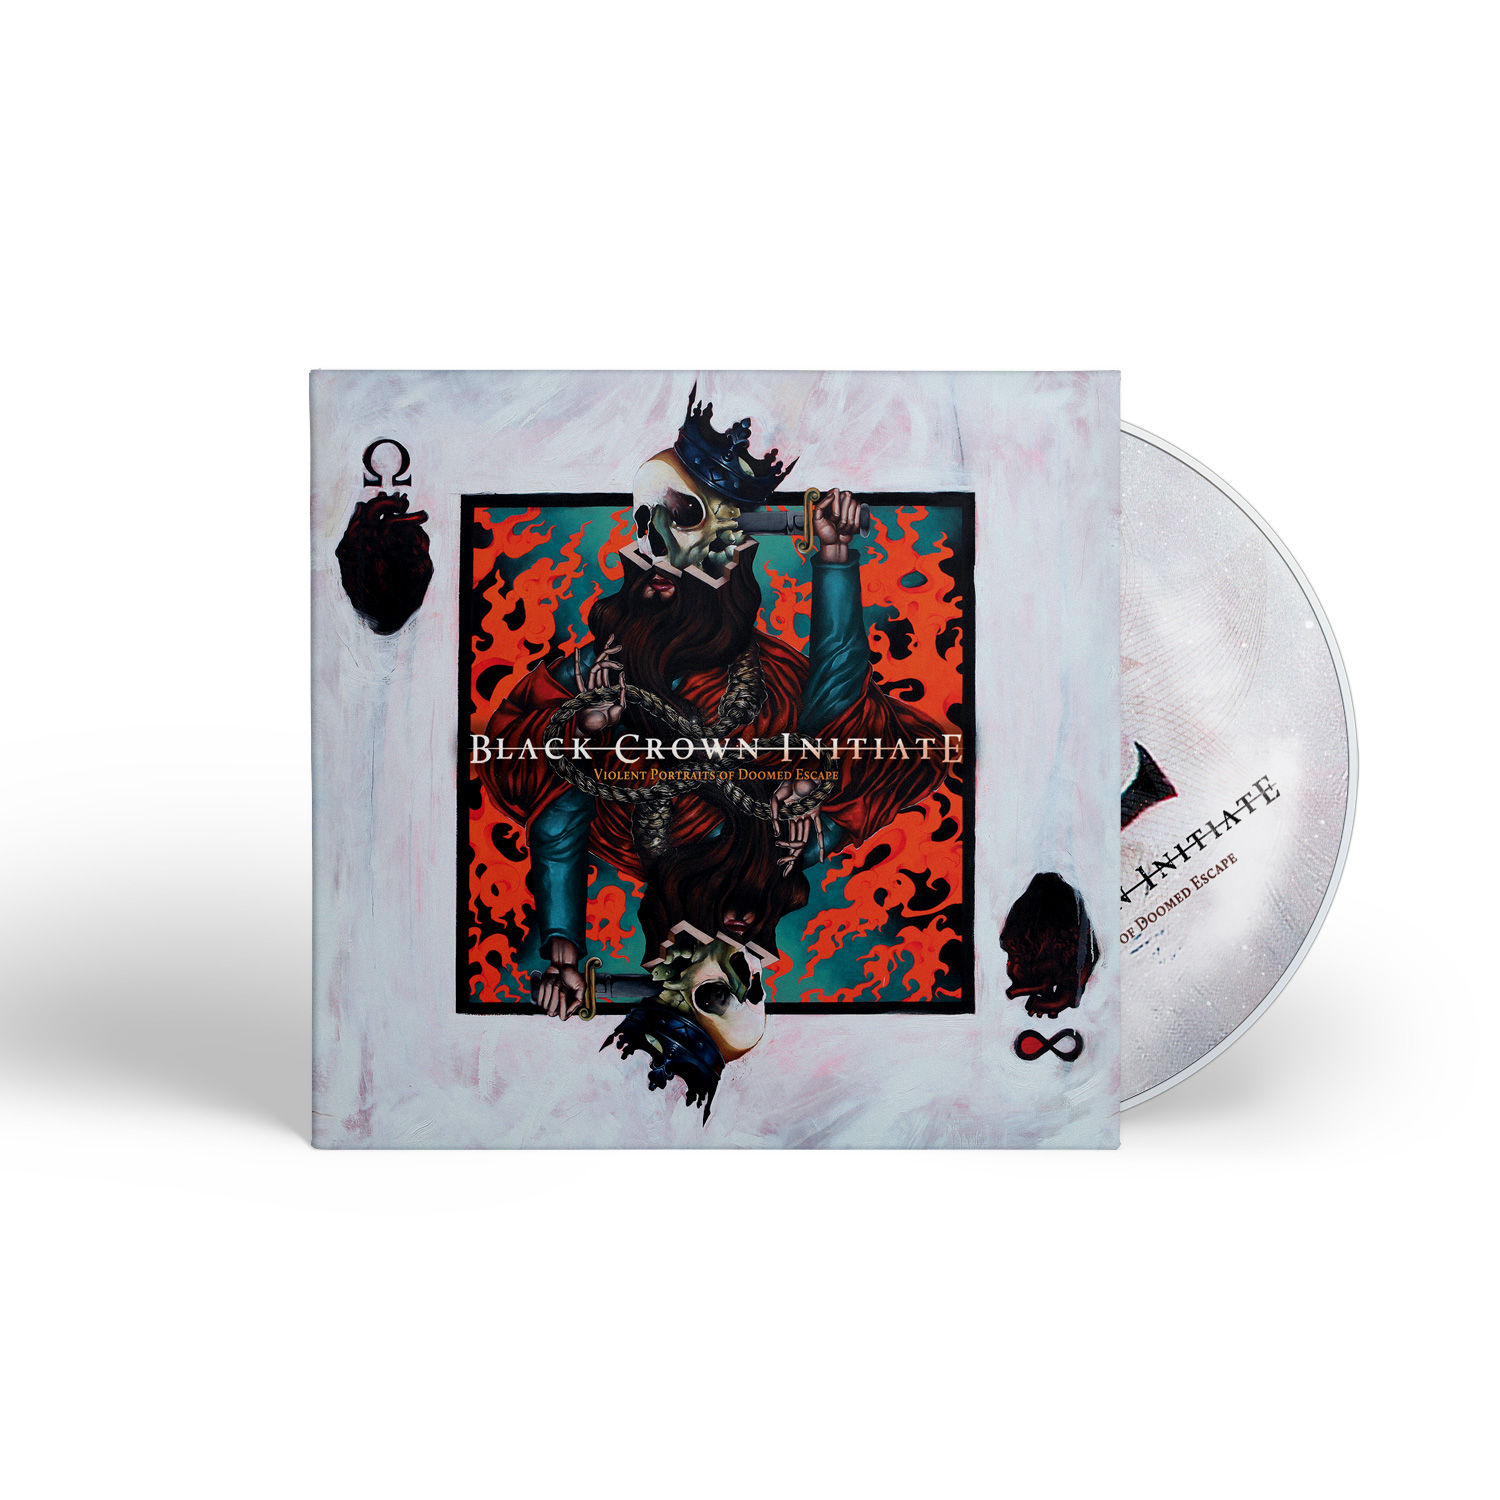 Violent Portraits Deluxe CD Bundle